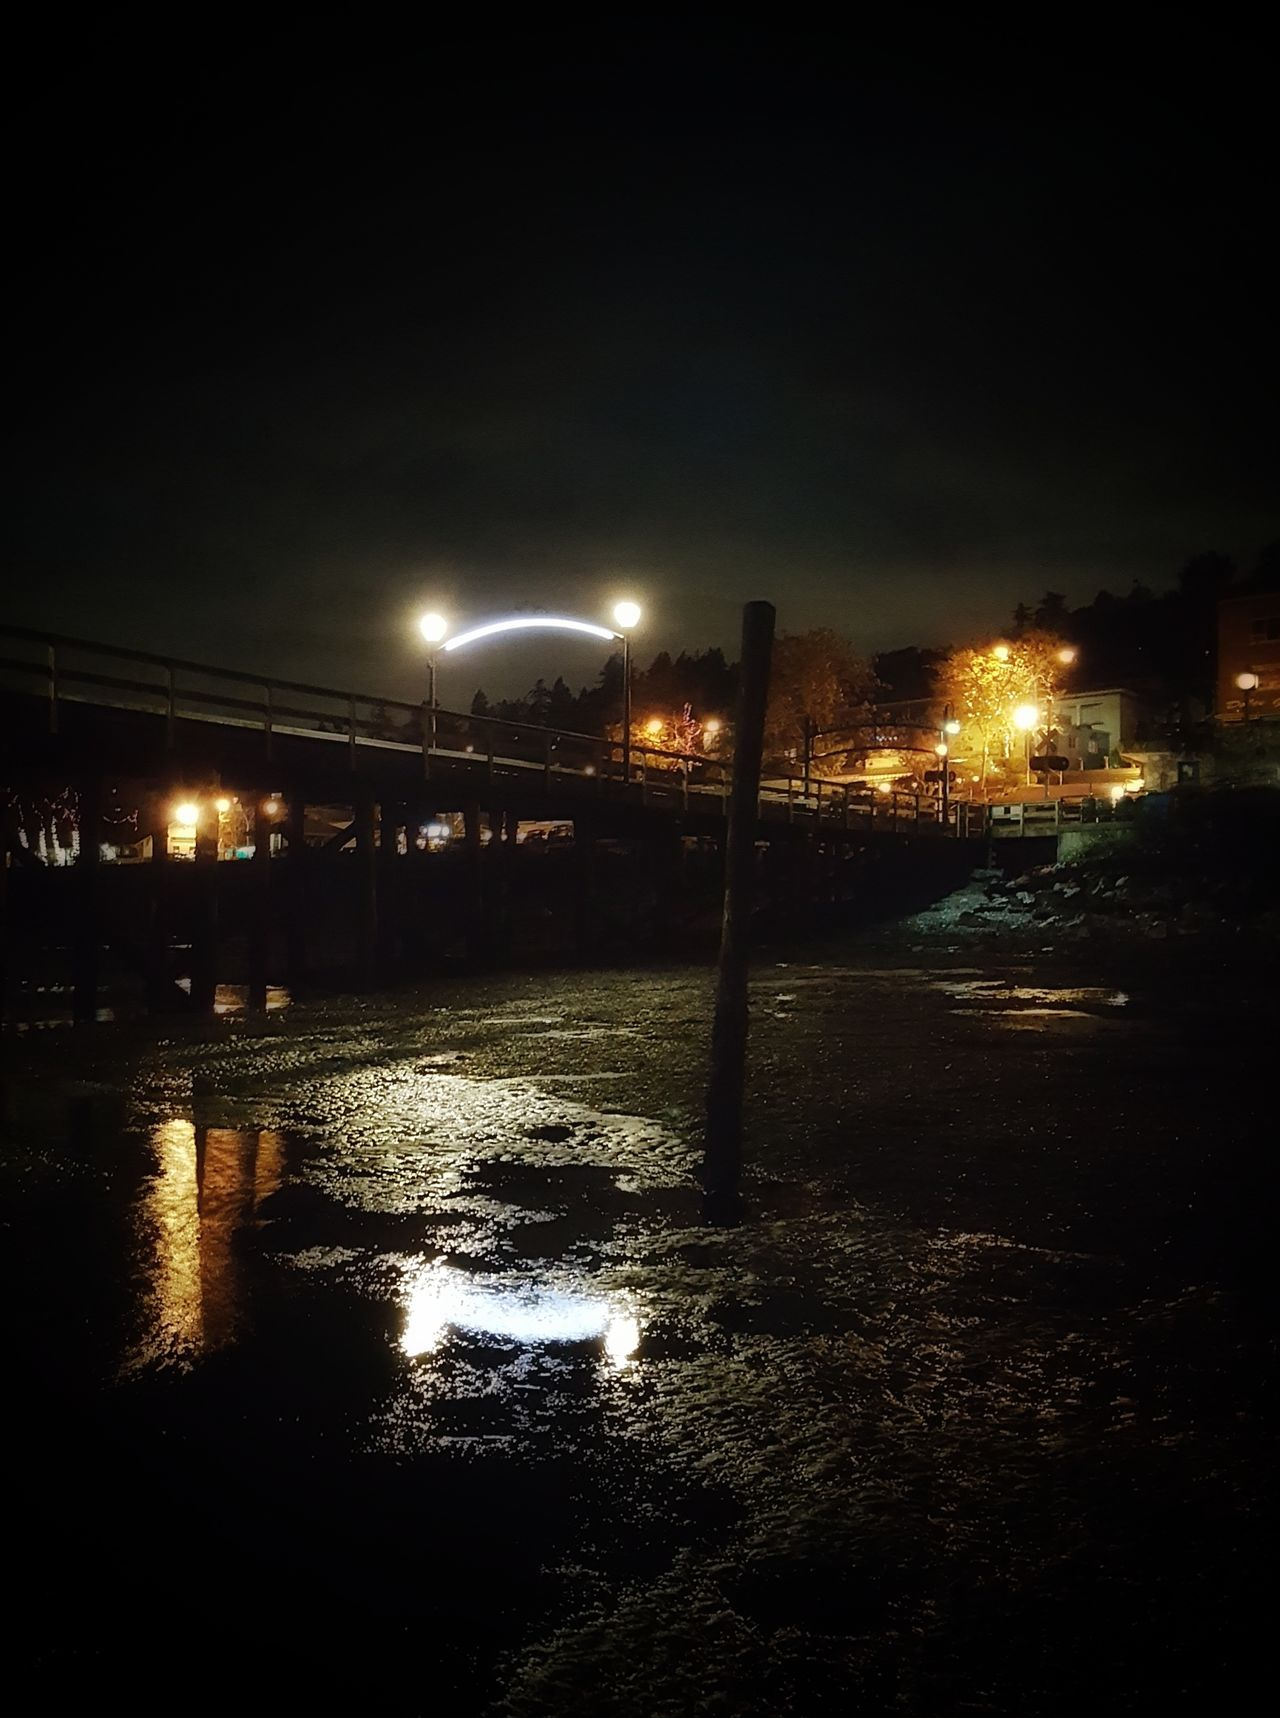 Illuminated Night Street Light Lighting Equipment Reflection Street Water Road Lamp Post Outdoors Sky Tranquility No People Bridge Scenics Tranquil Scene Non-urban Scene Atmosphere Atmospheric Mood Electric Light Cloud Reflection Street Light Architecture Waterfront